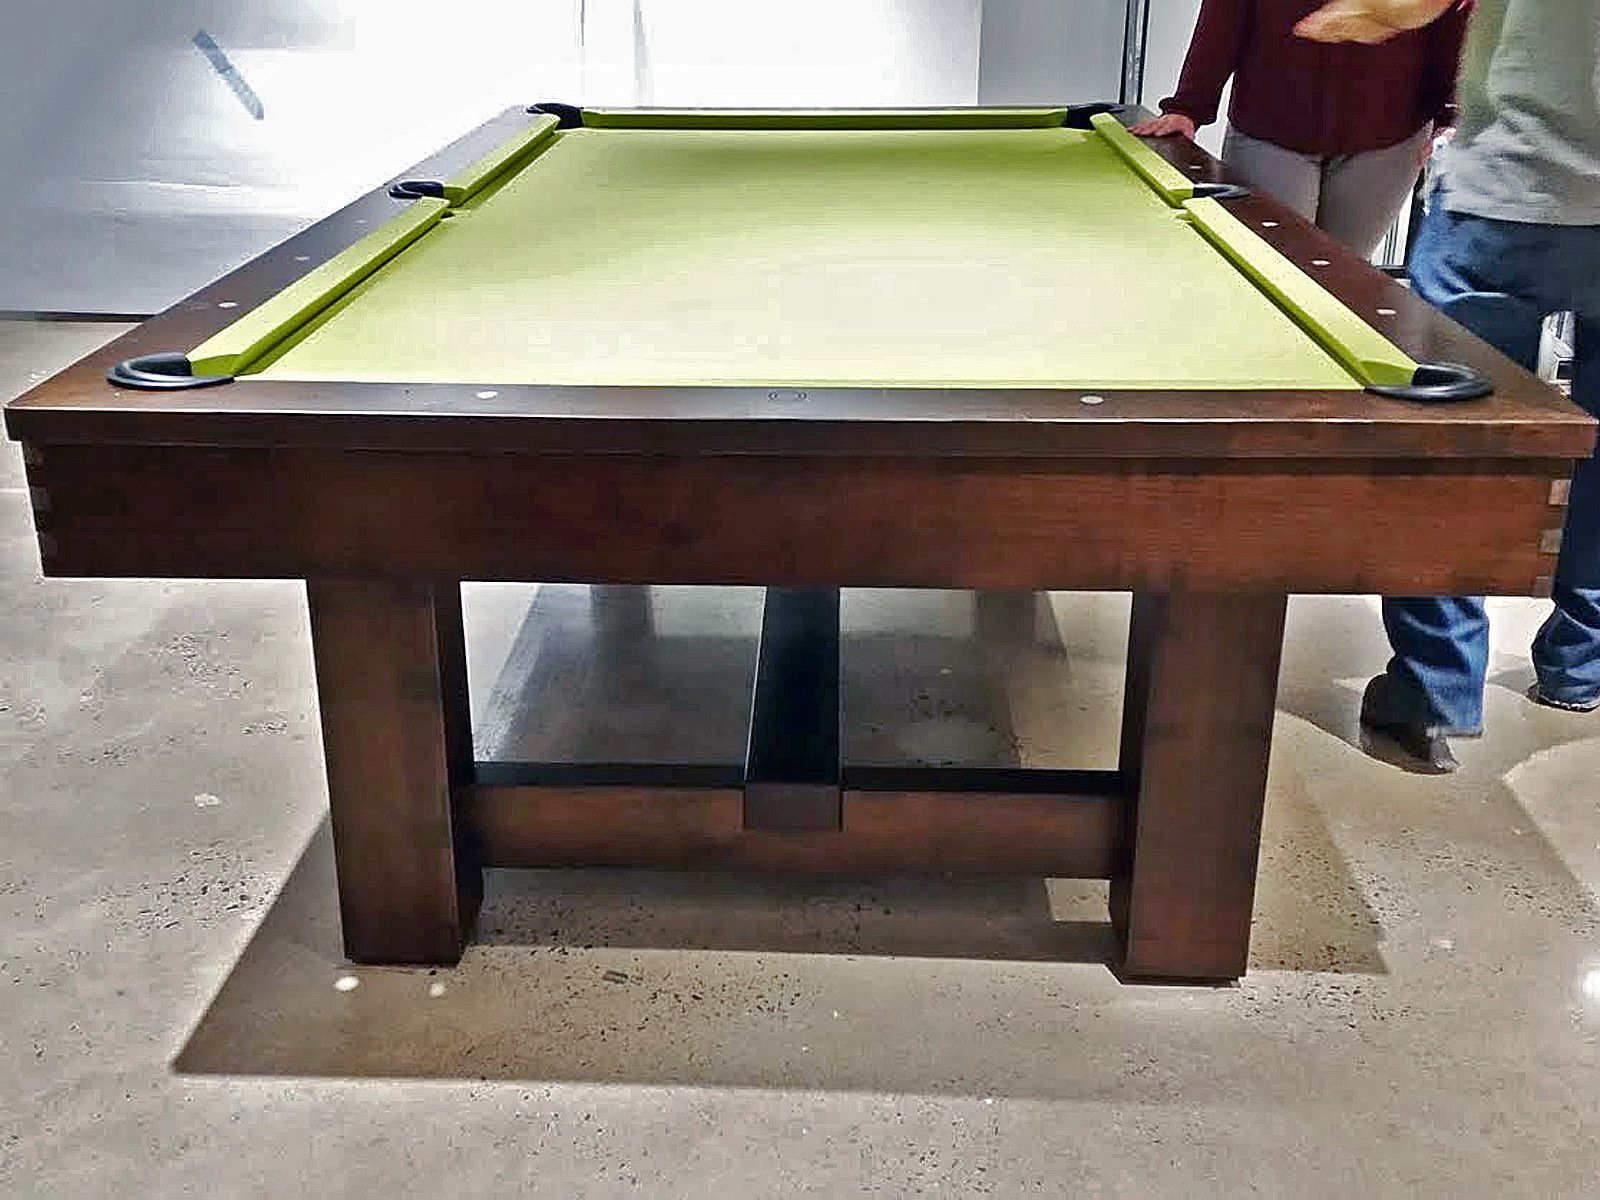 Olhausen Breckenridge Pool Table By Billiards Online At Robbies